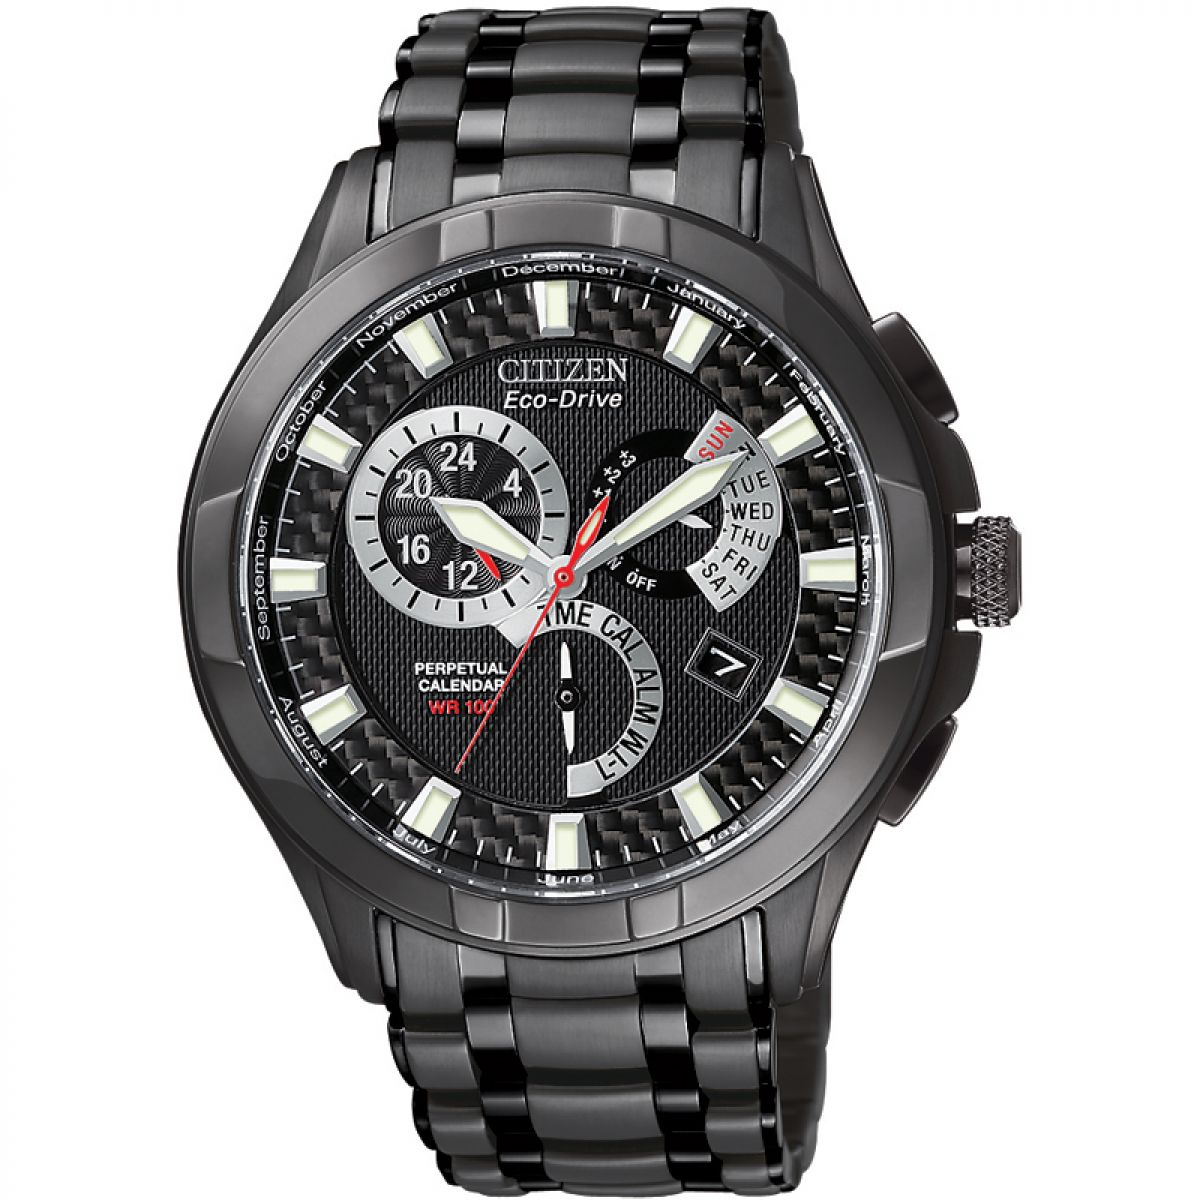 gents citizen calibre 8700 alarm watch bl8097 52e watchshop com rh watchshop com citizen eco drive 8700 manual pdf citizen calibre 8700 manual pdf